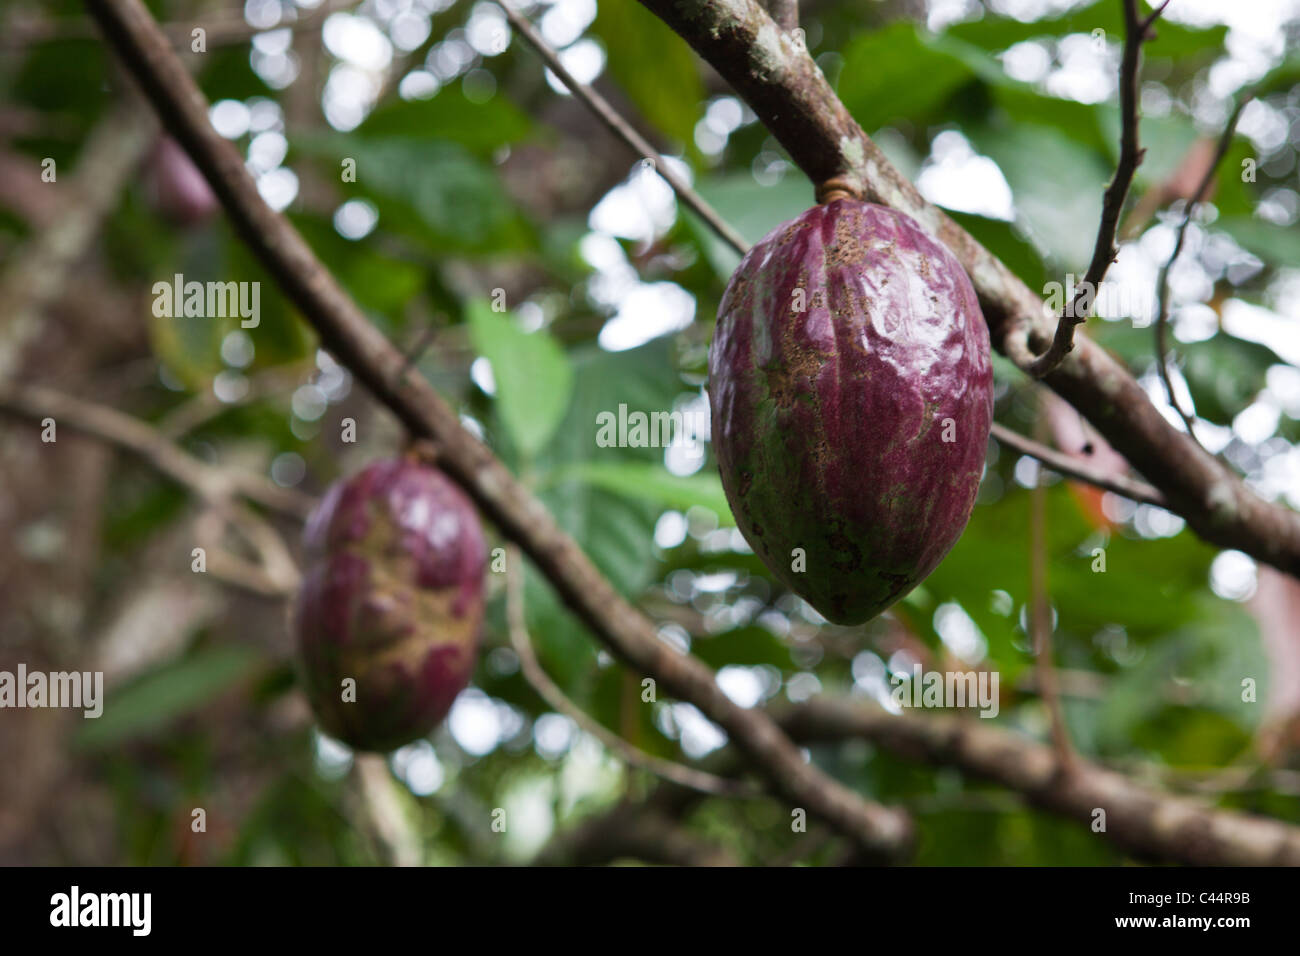 Fruit of cacao tree theobroma cacao los haitises national park fruit of cacao tree theobroma cacao los haitises national park dominican republic sciox Image collections